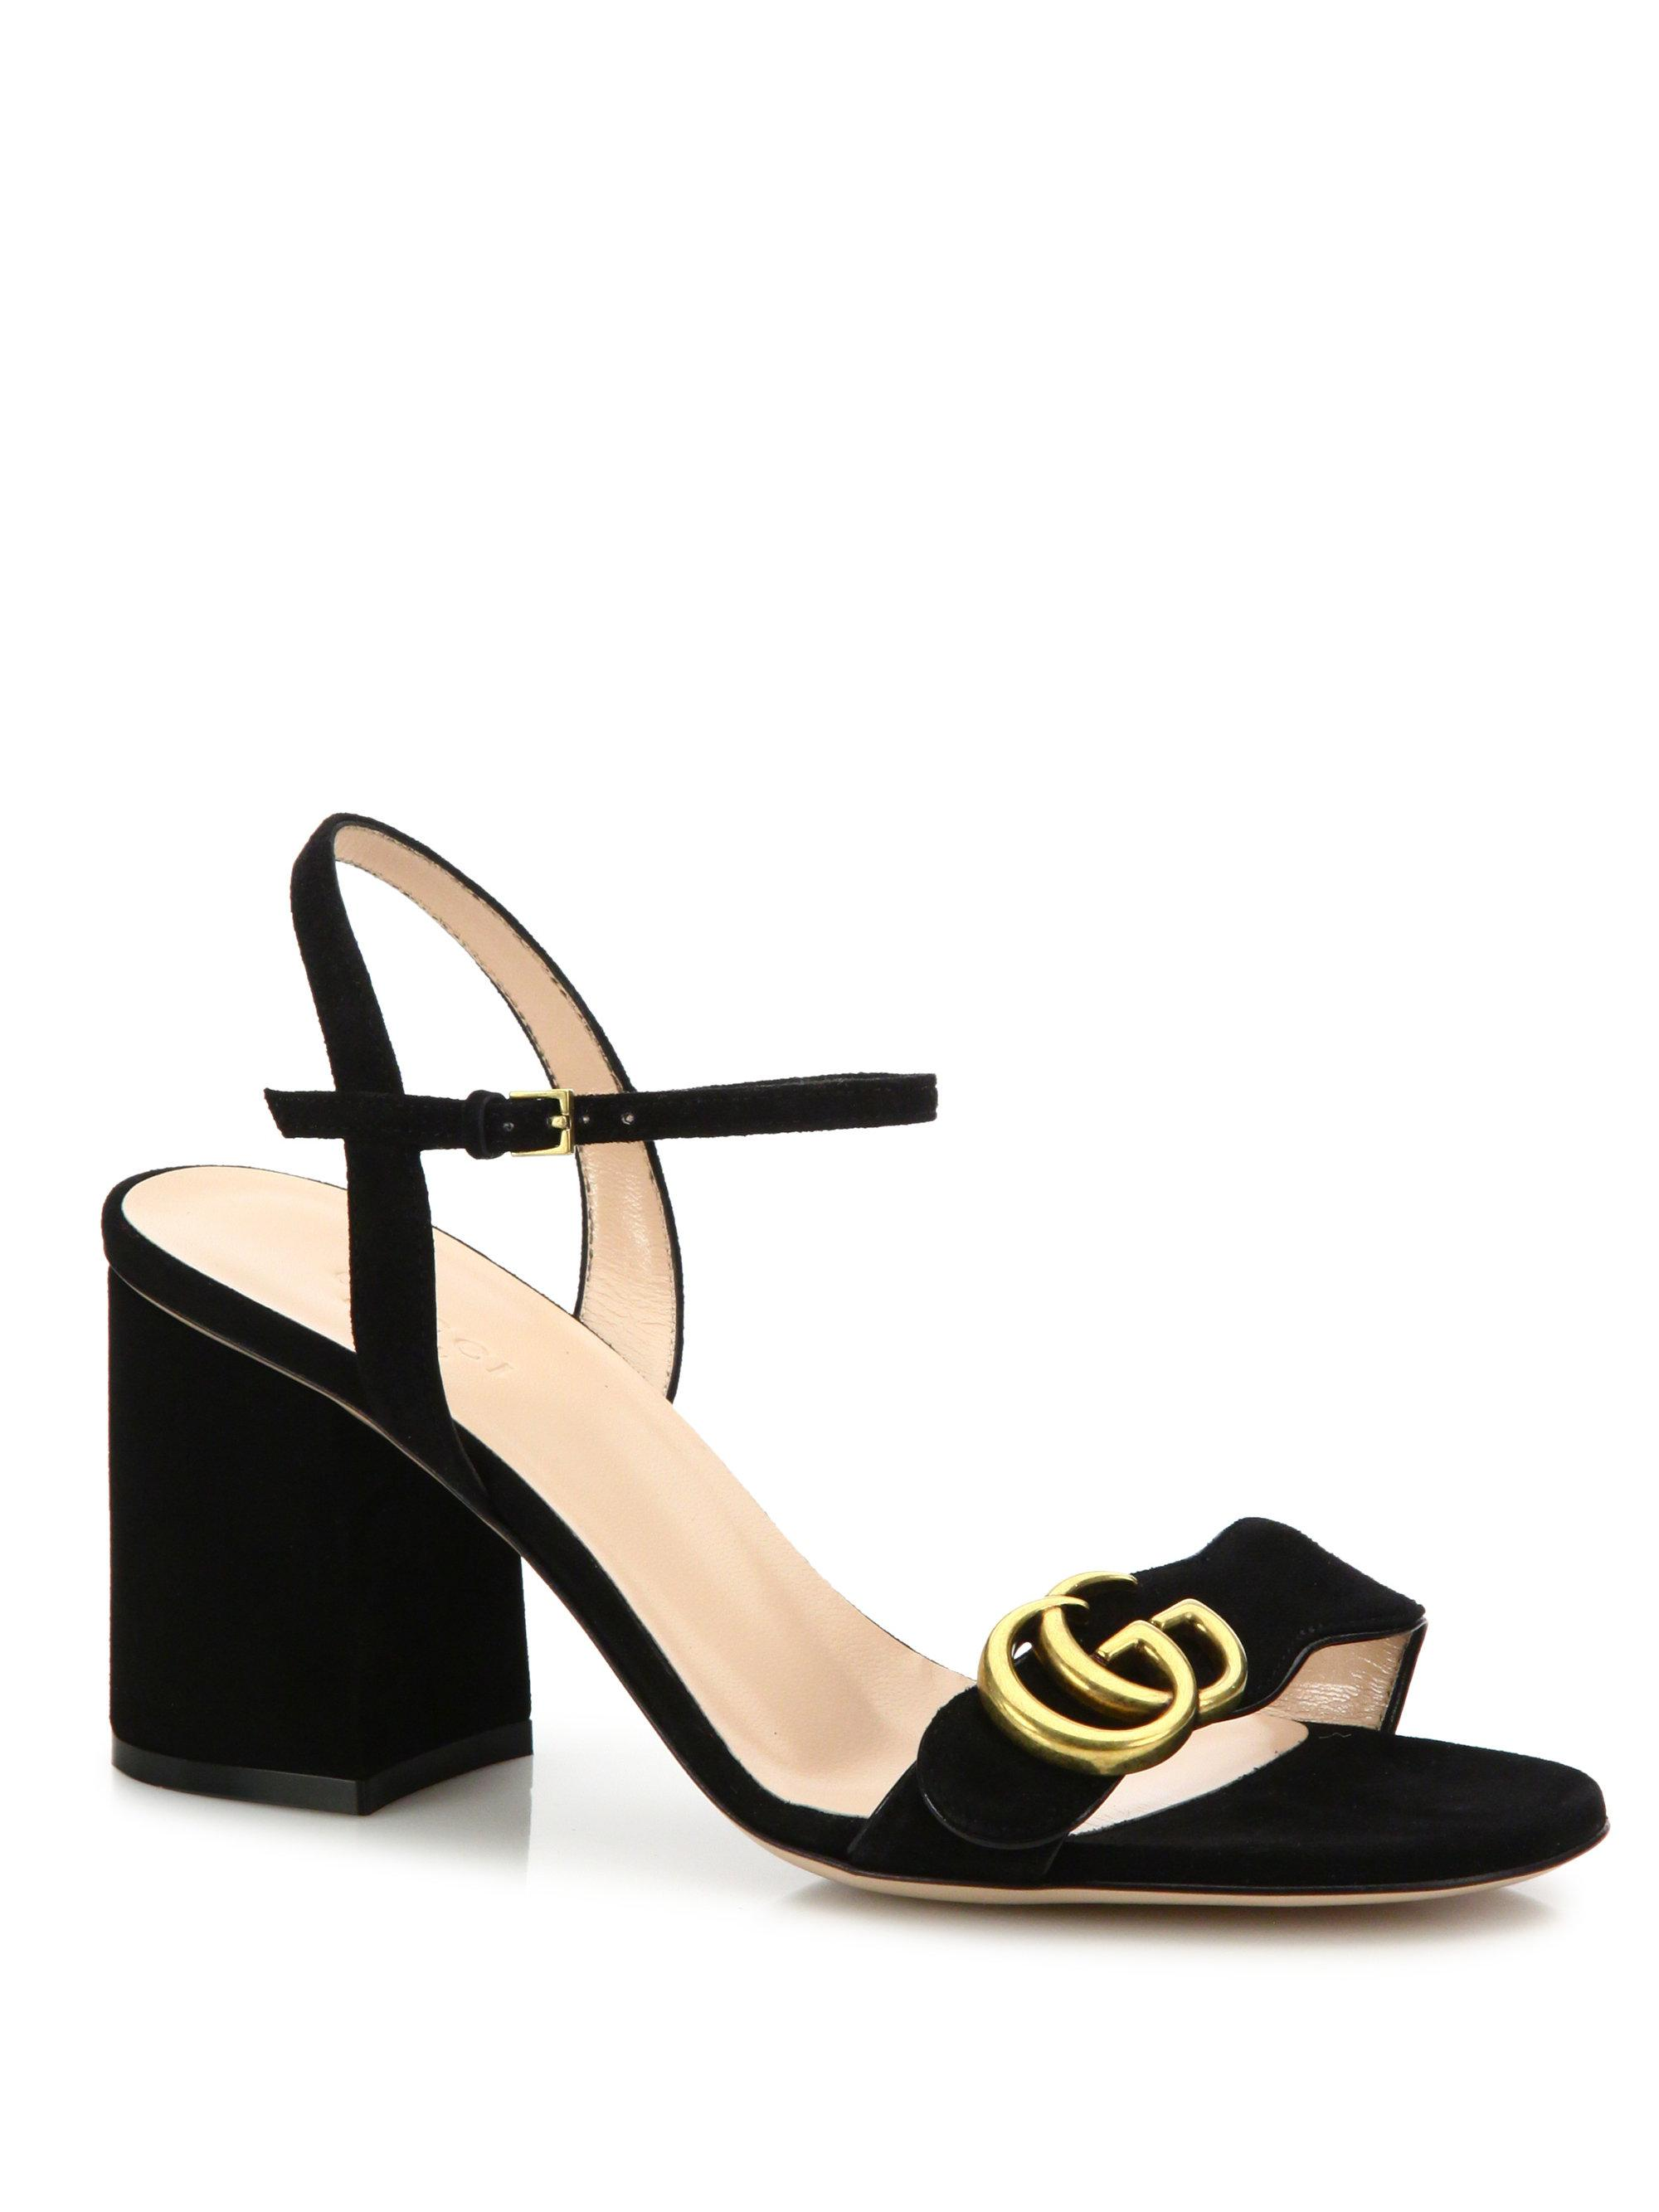 1738ef529 Lyst - Gucci Gg Marmont Sandal in Black